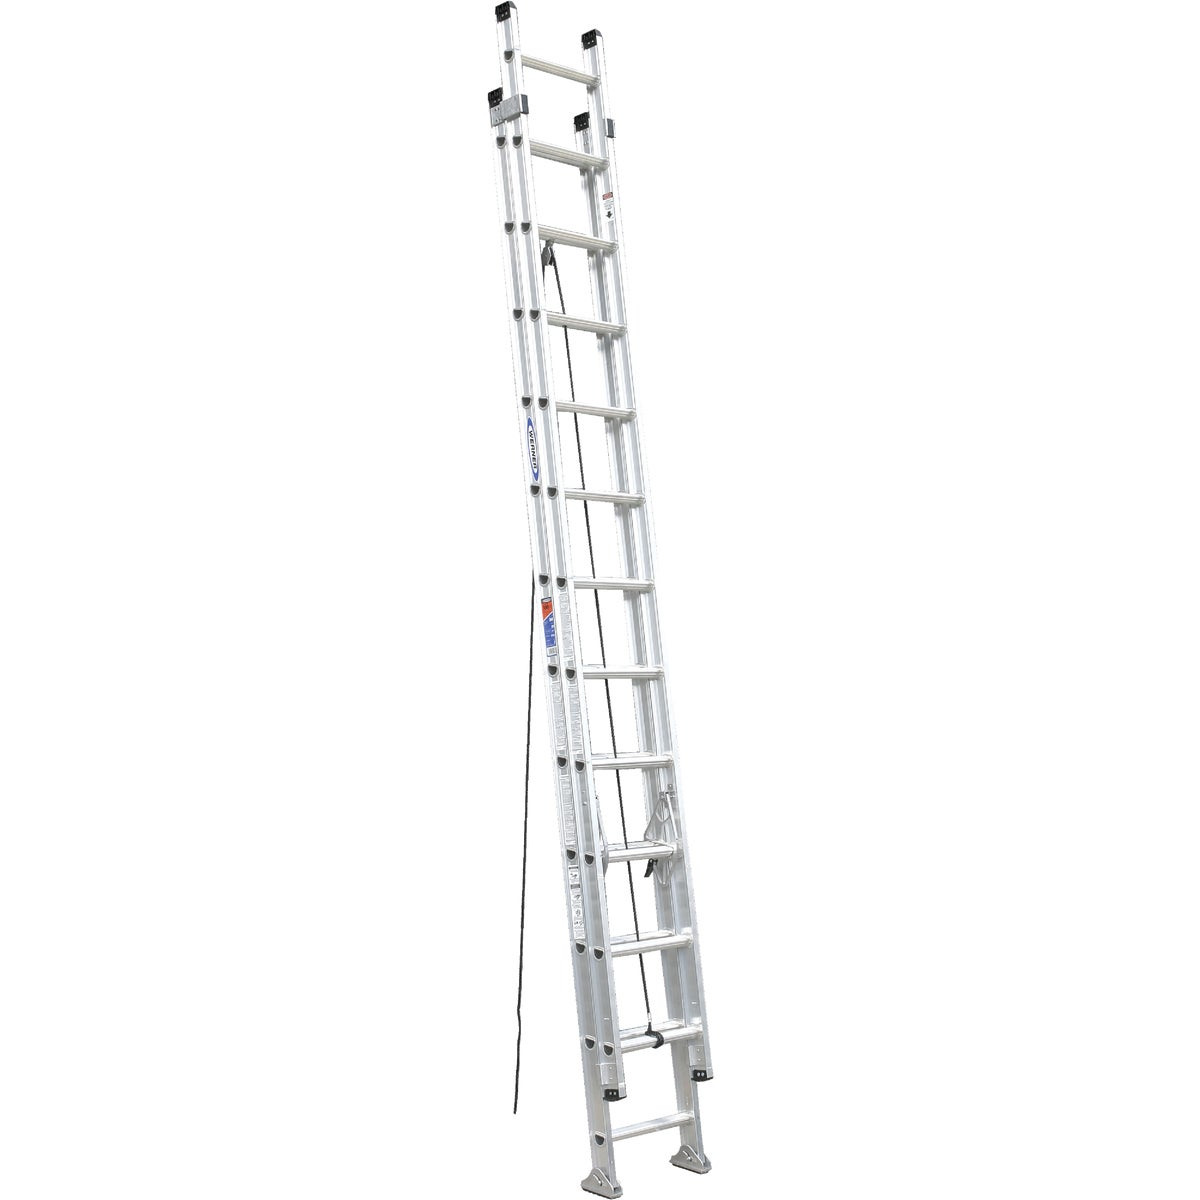 T-1A 24' ALUM EXT LADDER - D1524-2 by Werner Ladder